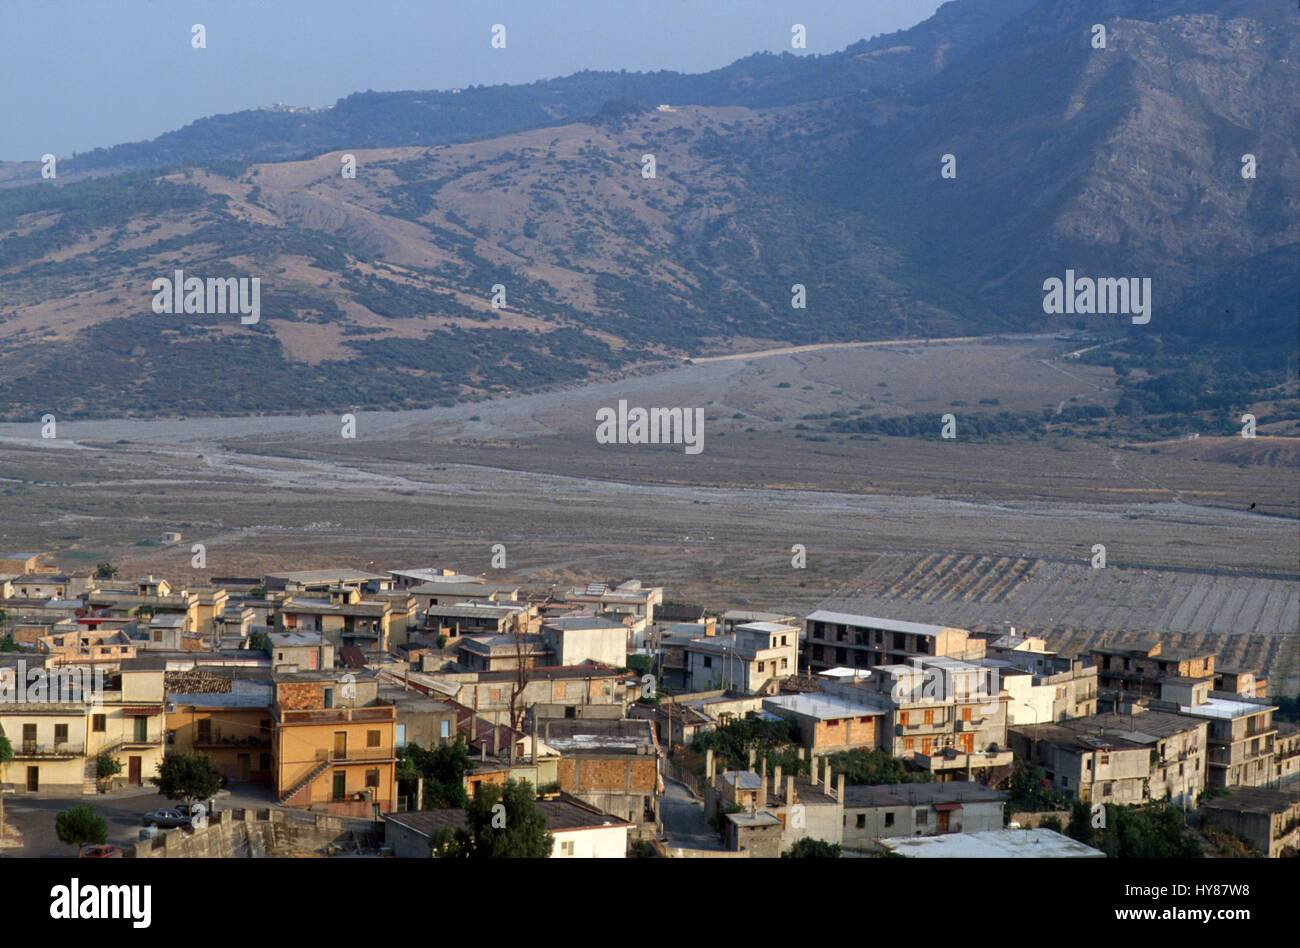 the village of San Luca (Reggio Calabria), home of the most important clans of  Calabrian 'Ndrangheta (organized - Stock Image